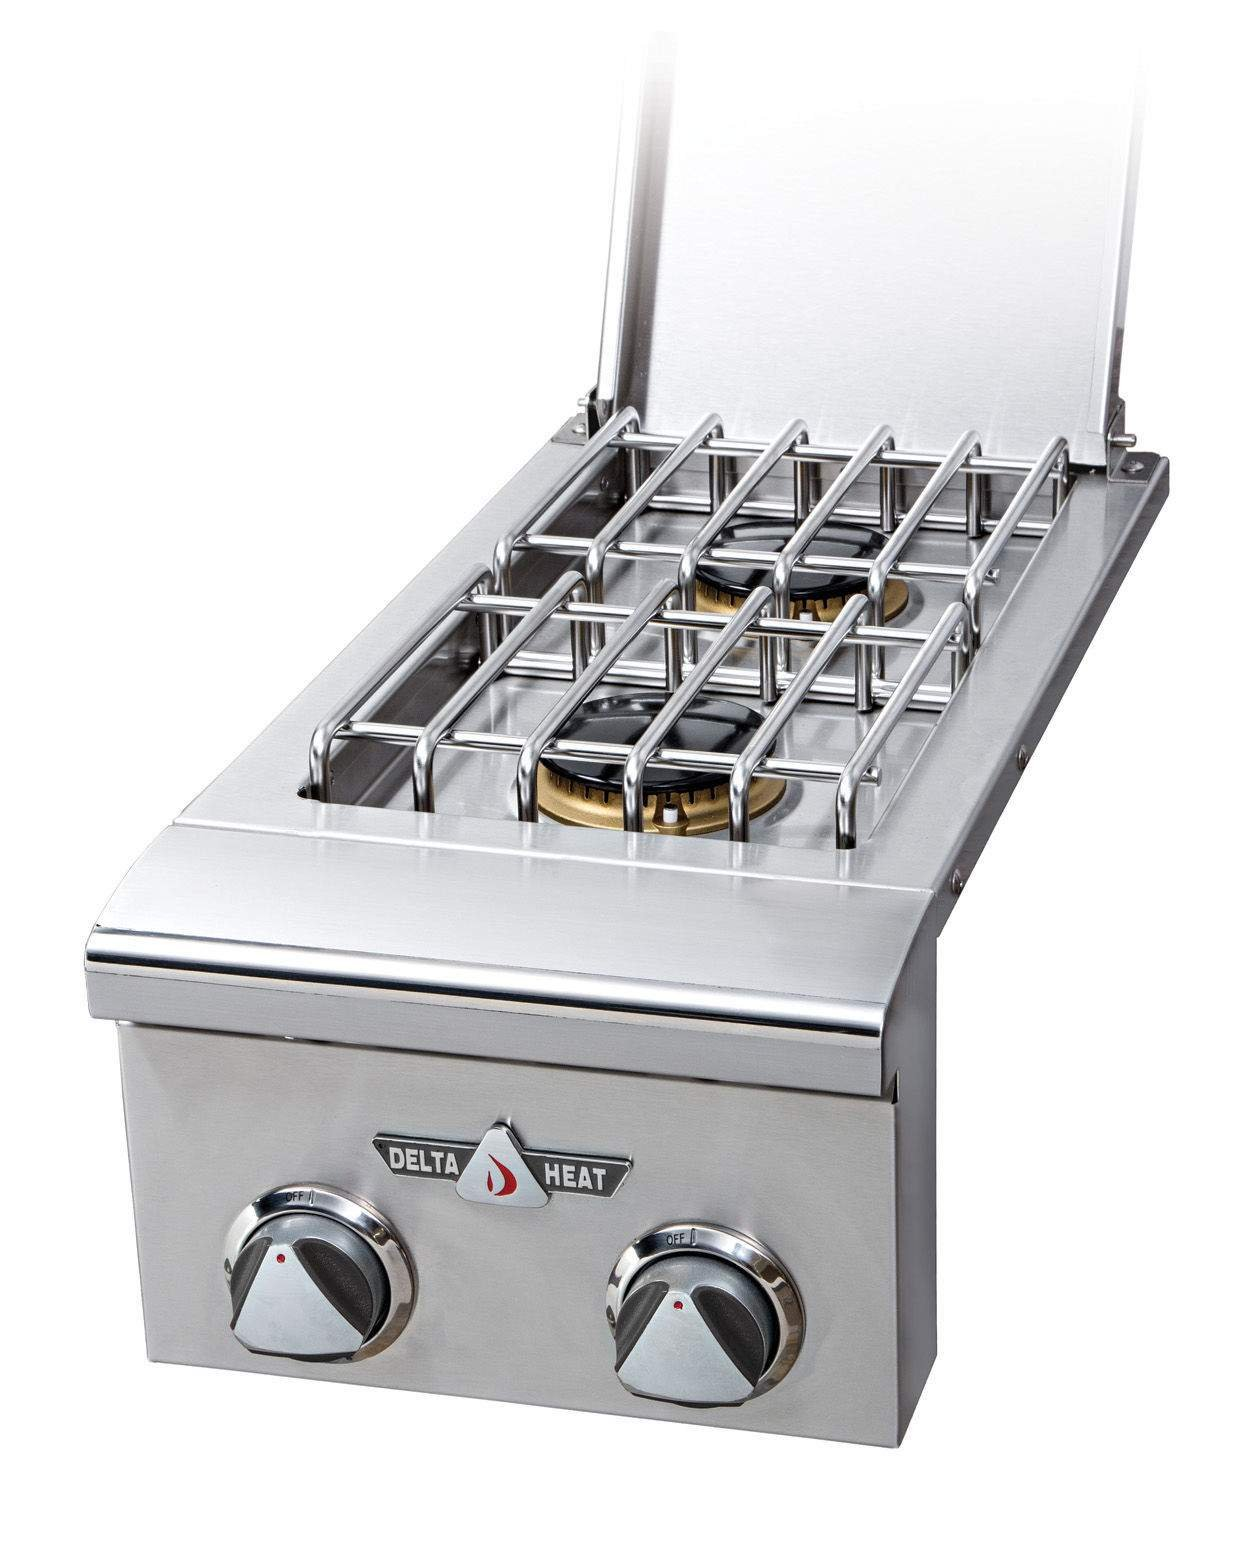 Delta Heat DHSB2-CL Liquid Propane Double Side Burner with Two 16 000 BTU Sealed Burners 9V Electronic Ignition and LED Control Panel Lights in Stainless by Delta Heat